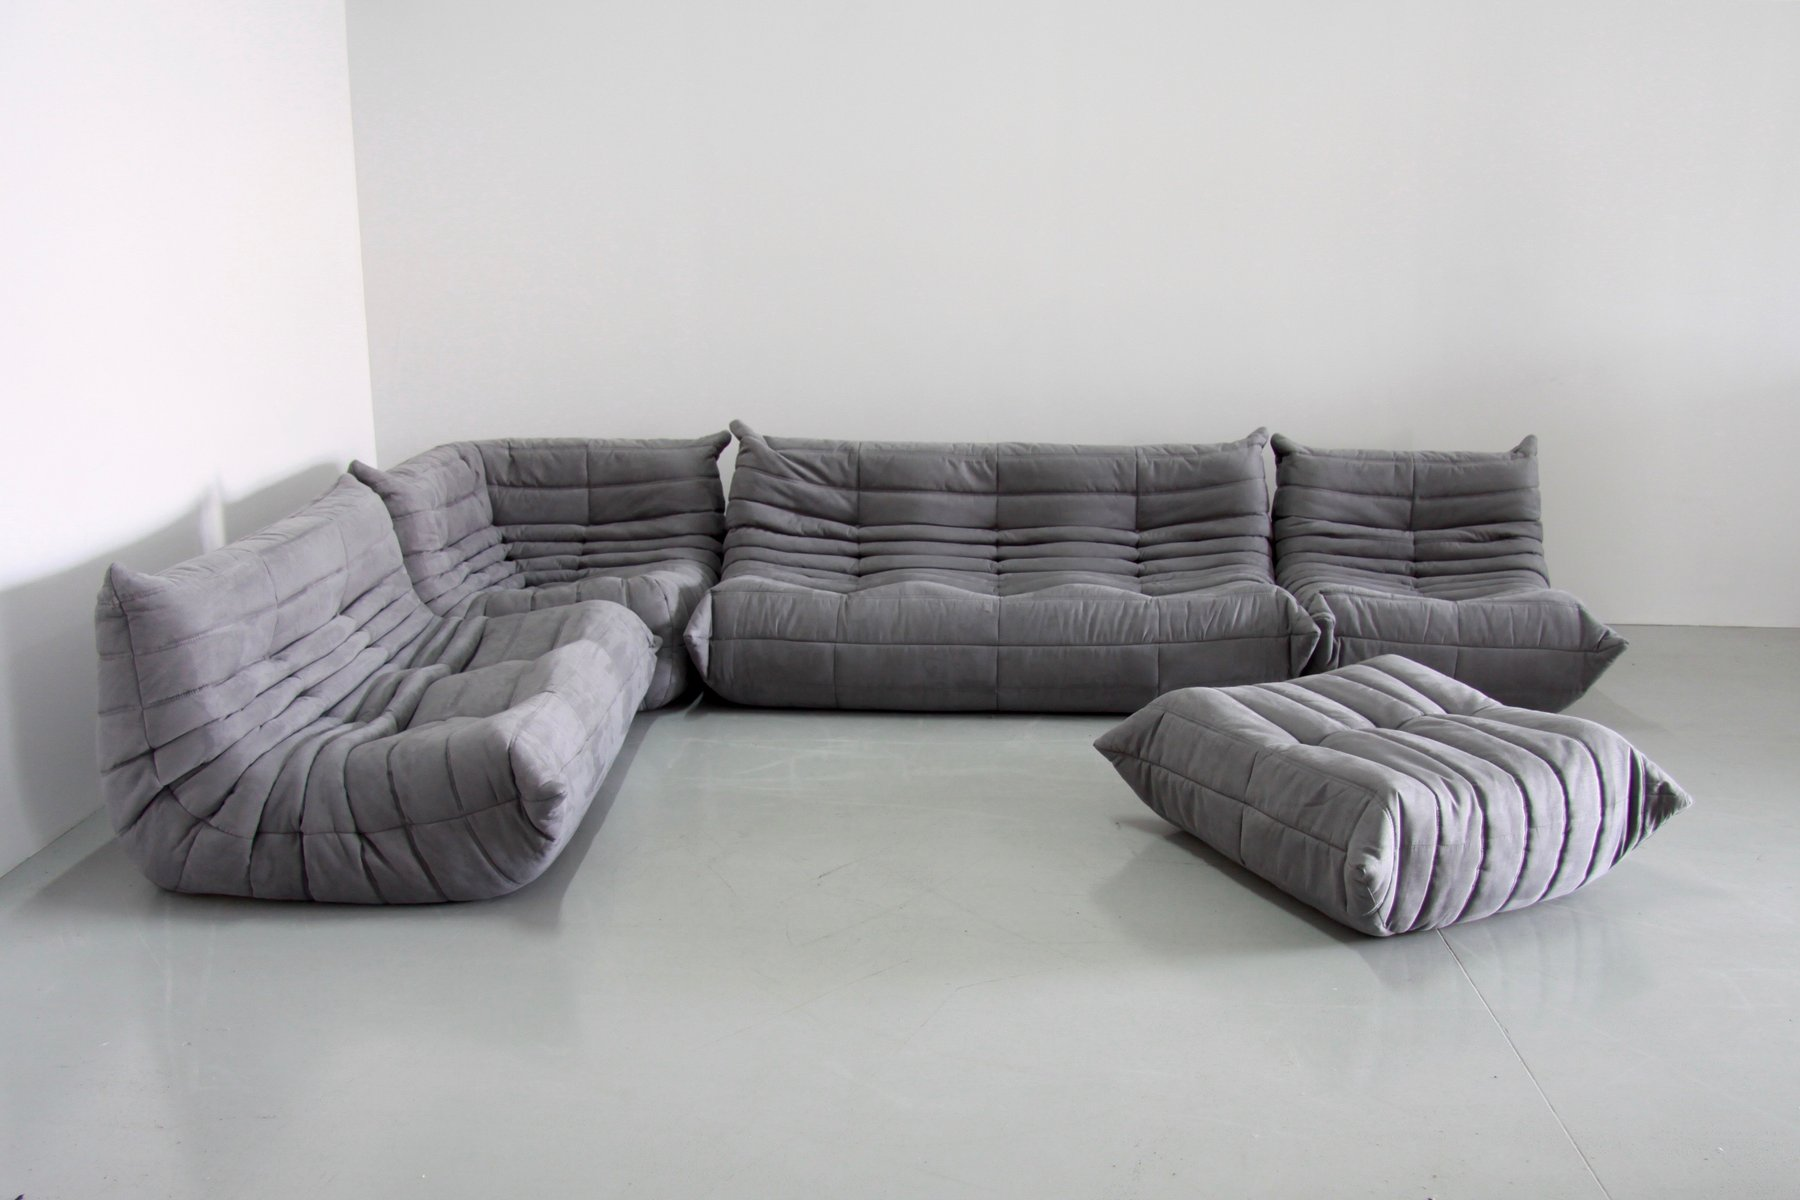 set de canap s togo en microfibre gris par michel ducaroy pour ligne roset 1970s set de 5 en. Black Bedroom Furniture Sets. Home Design Ideas